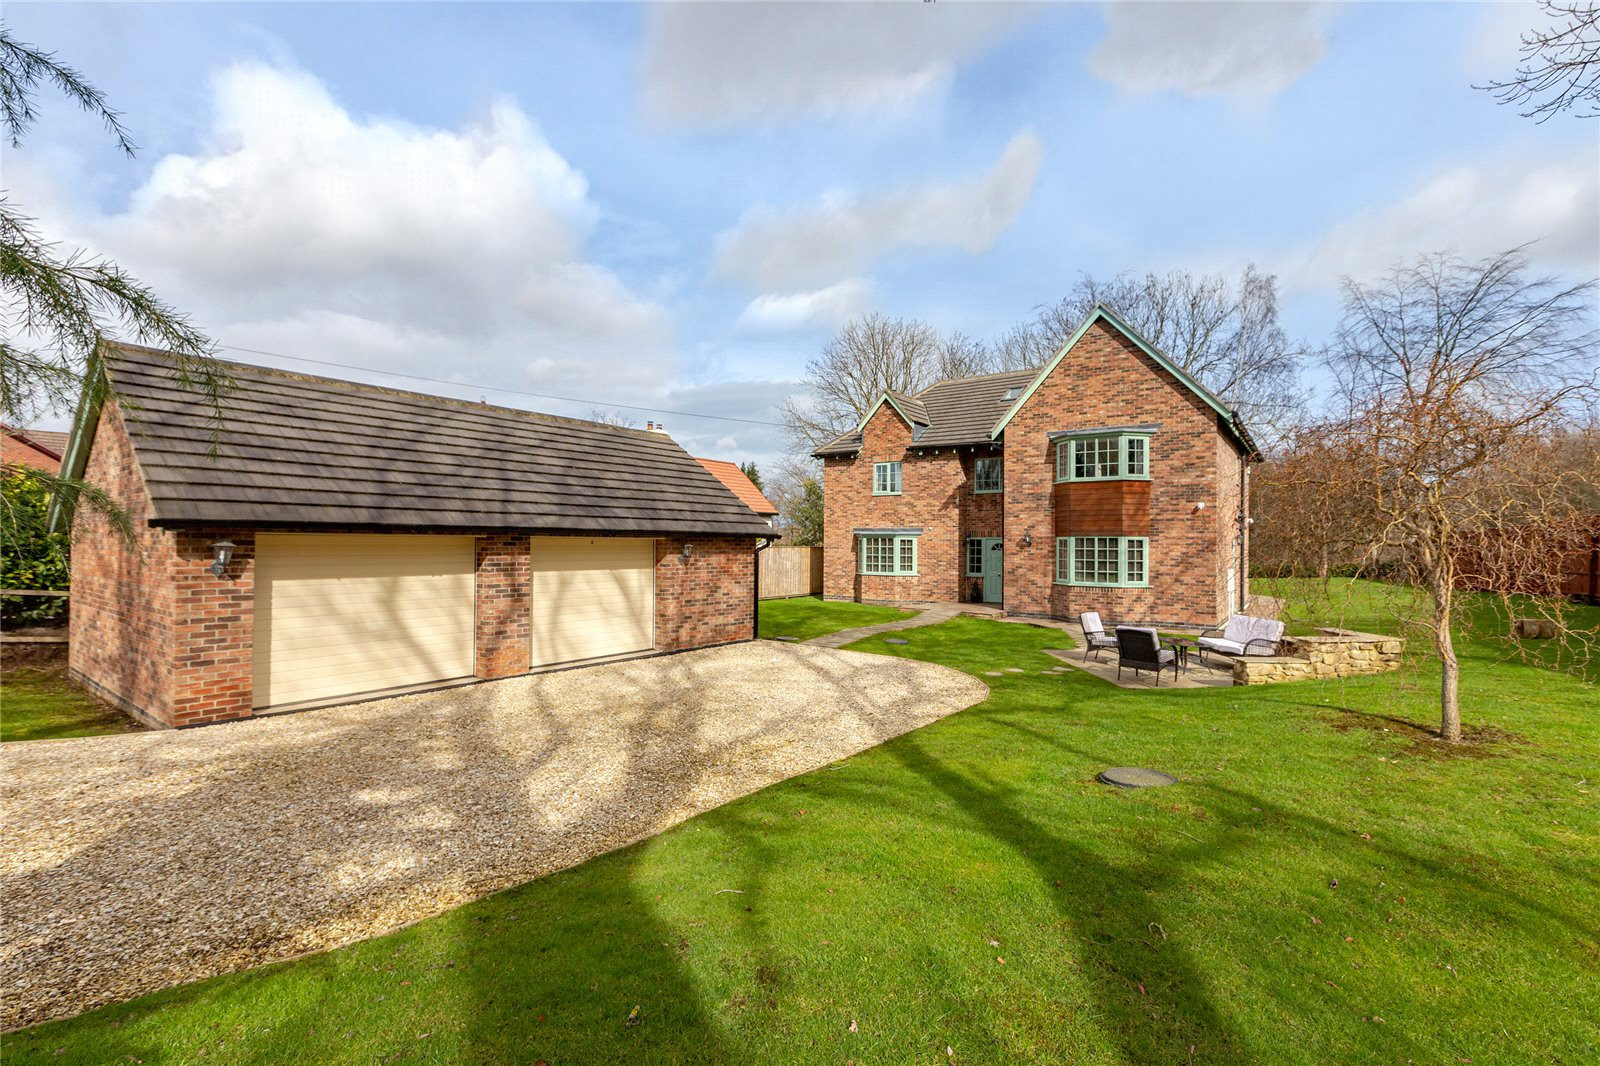 6 bed house for sale in Ladgate Lane, Middlesbrough 1